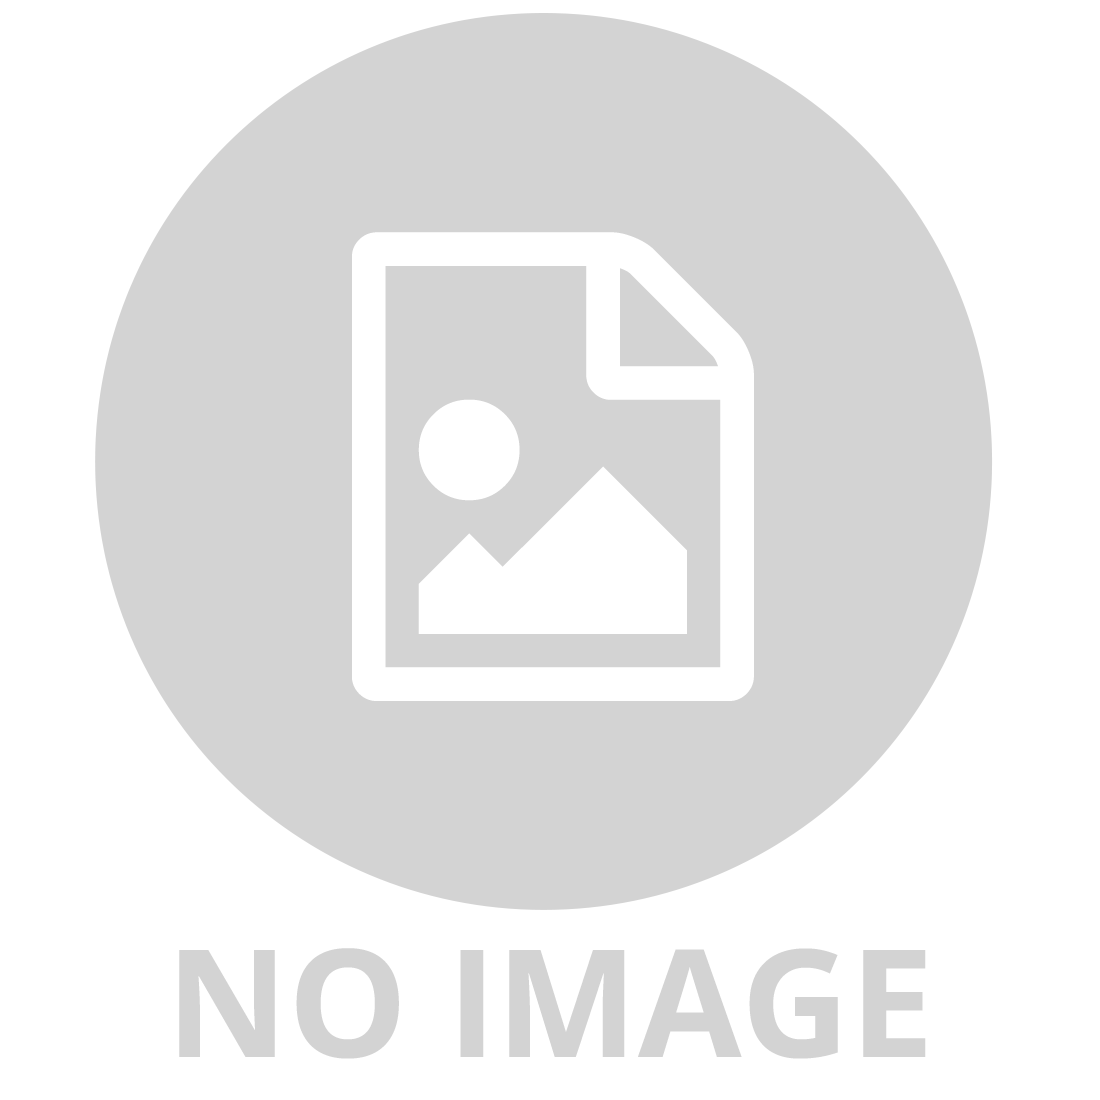 Pixie Remote Switch SMC/BT Multifunction